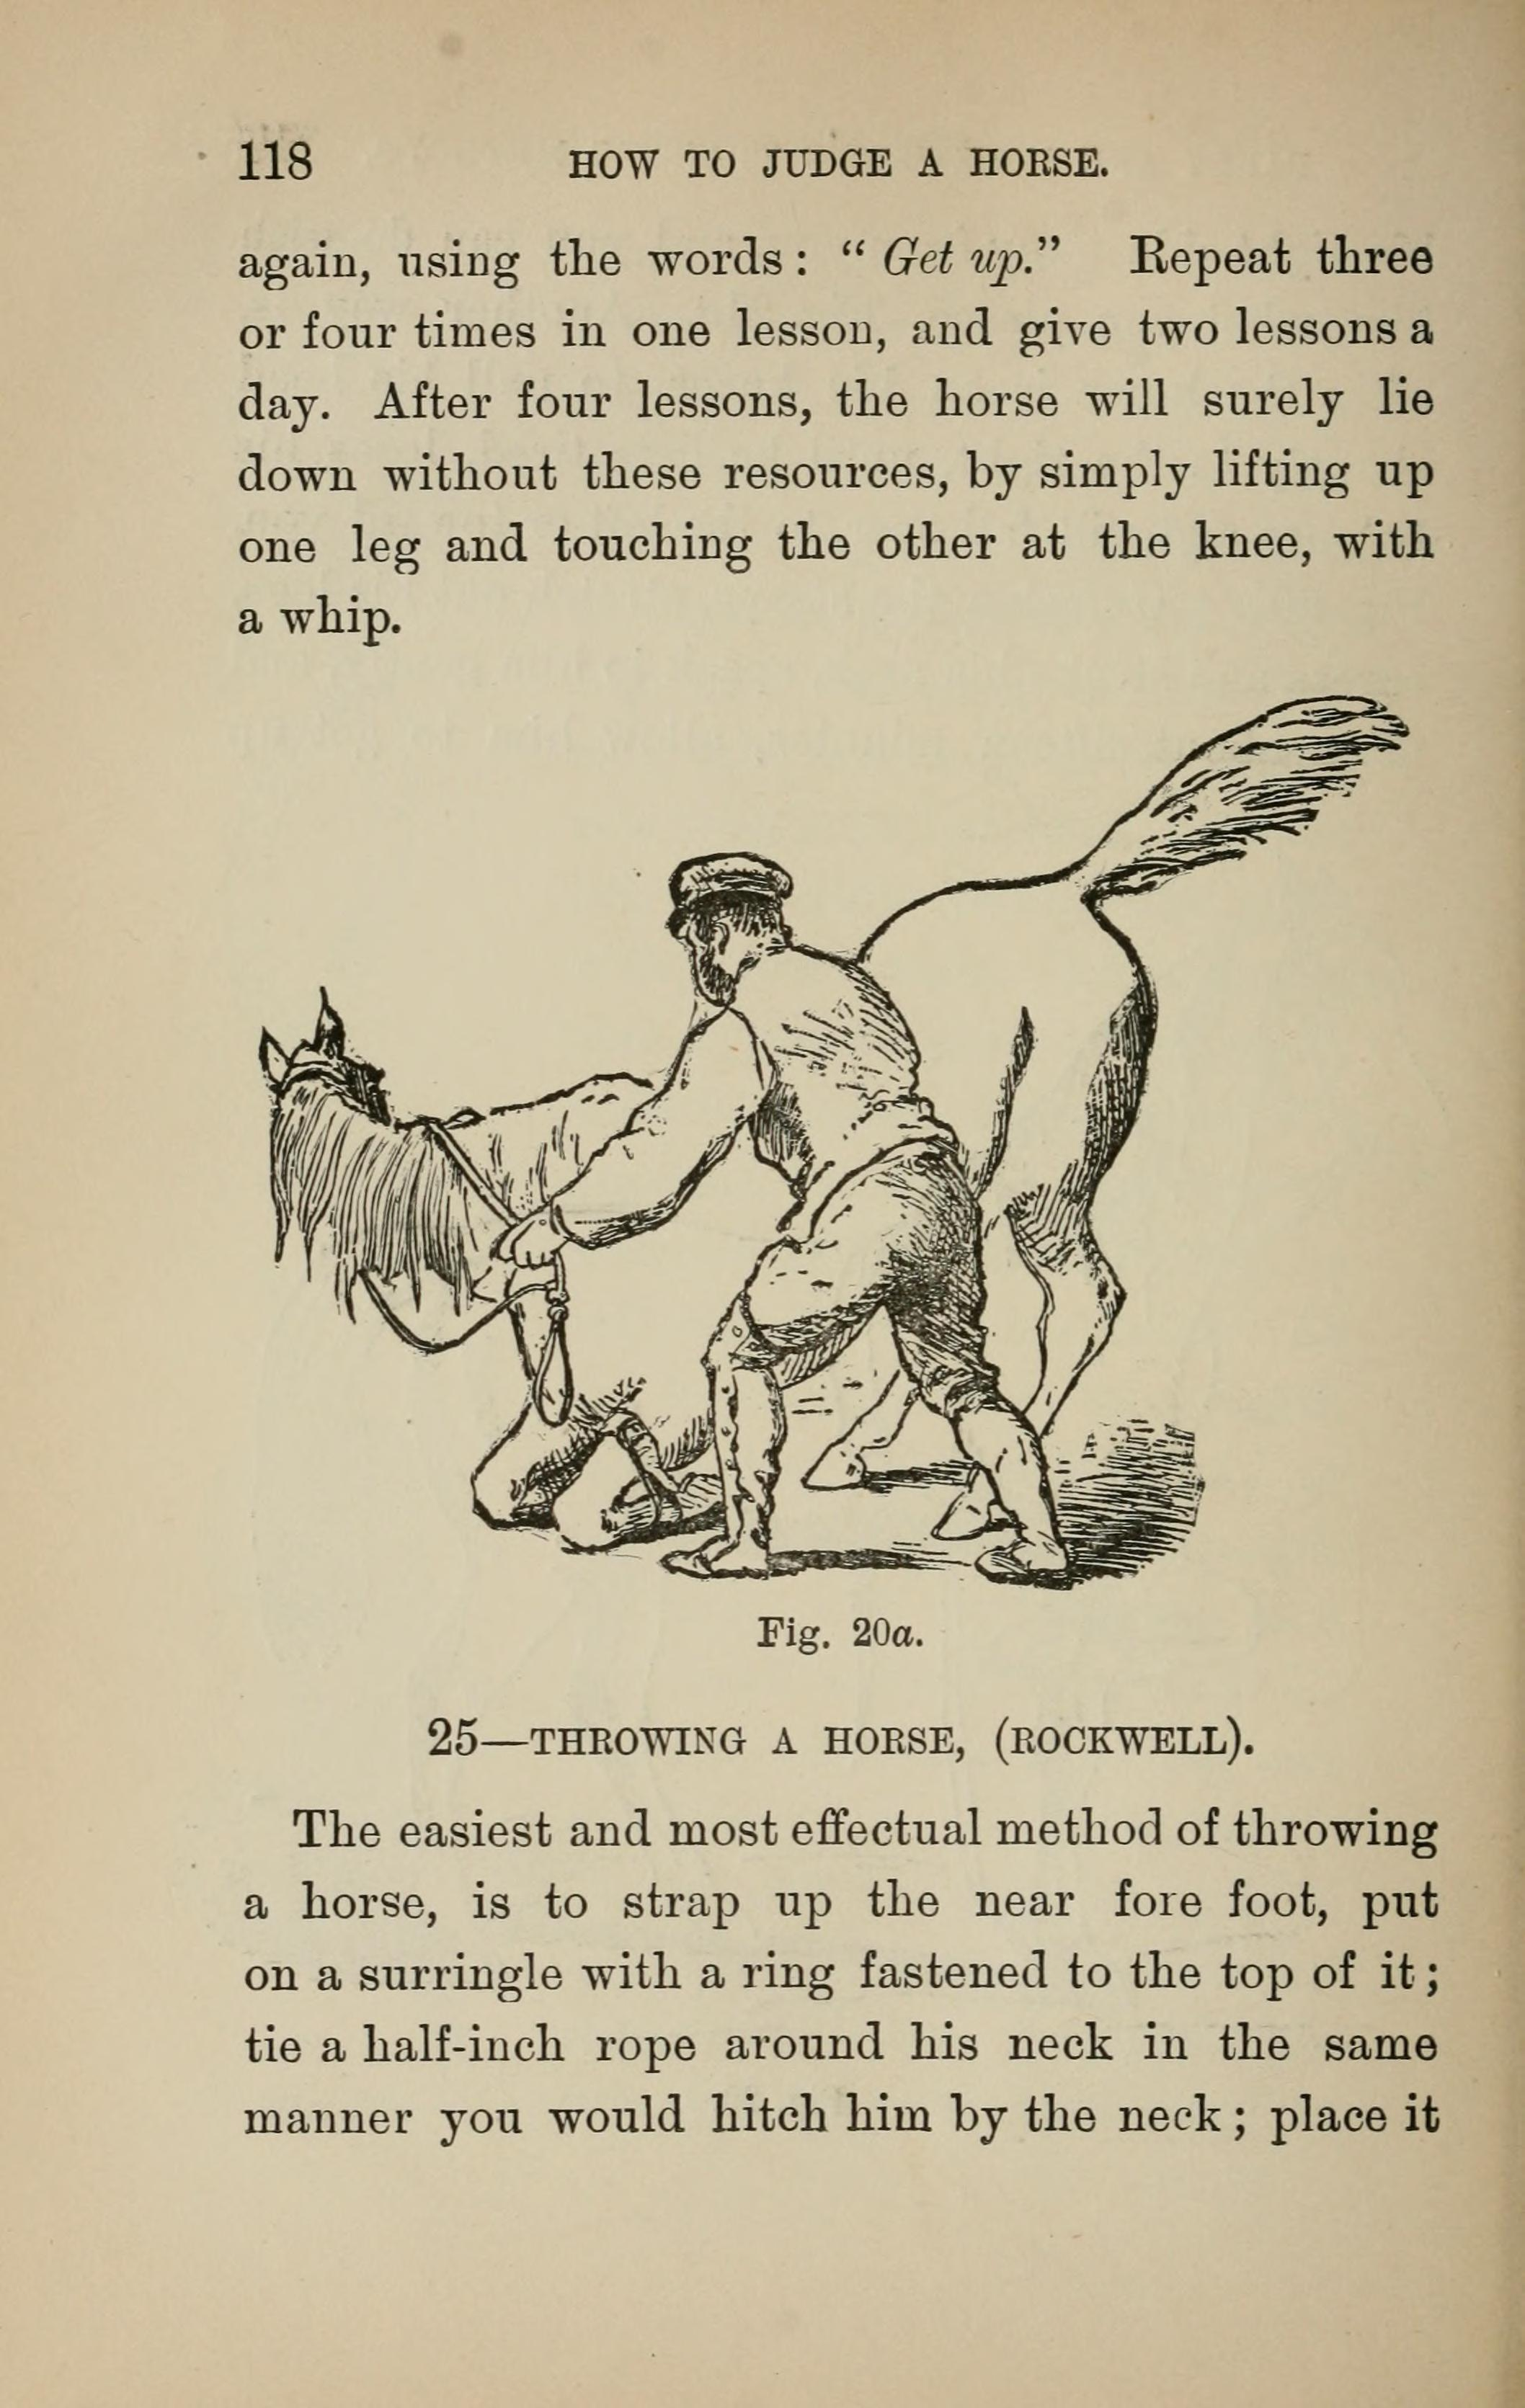 File:How to judge a horse (Page 118) BHL18289272 jpg